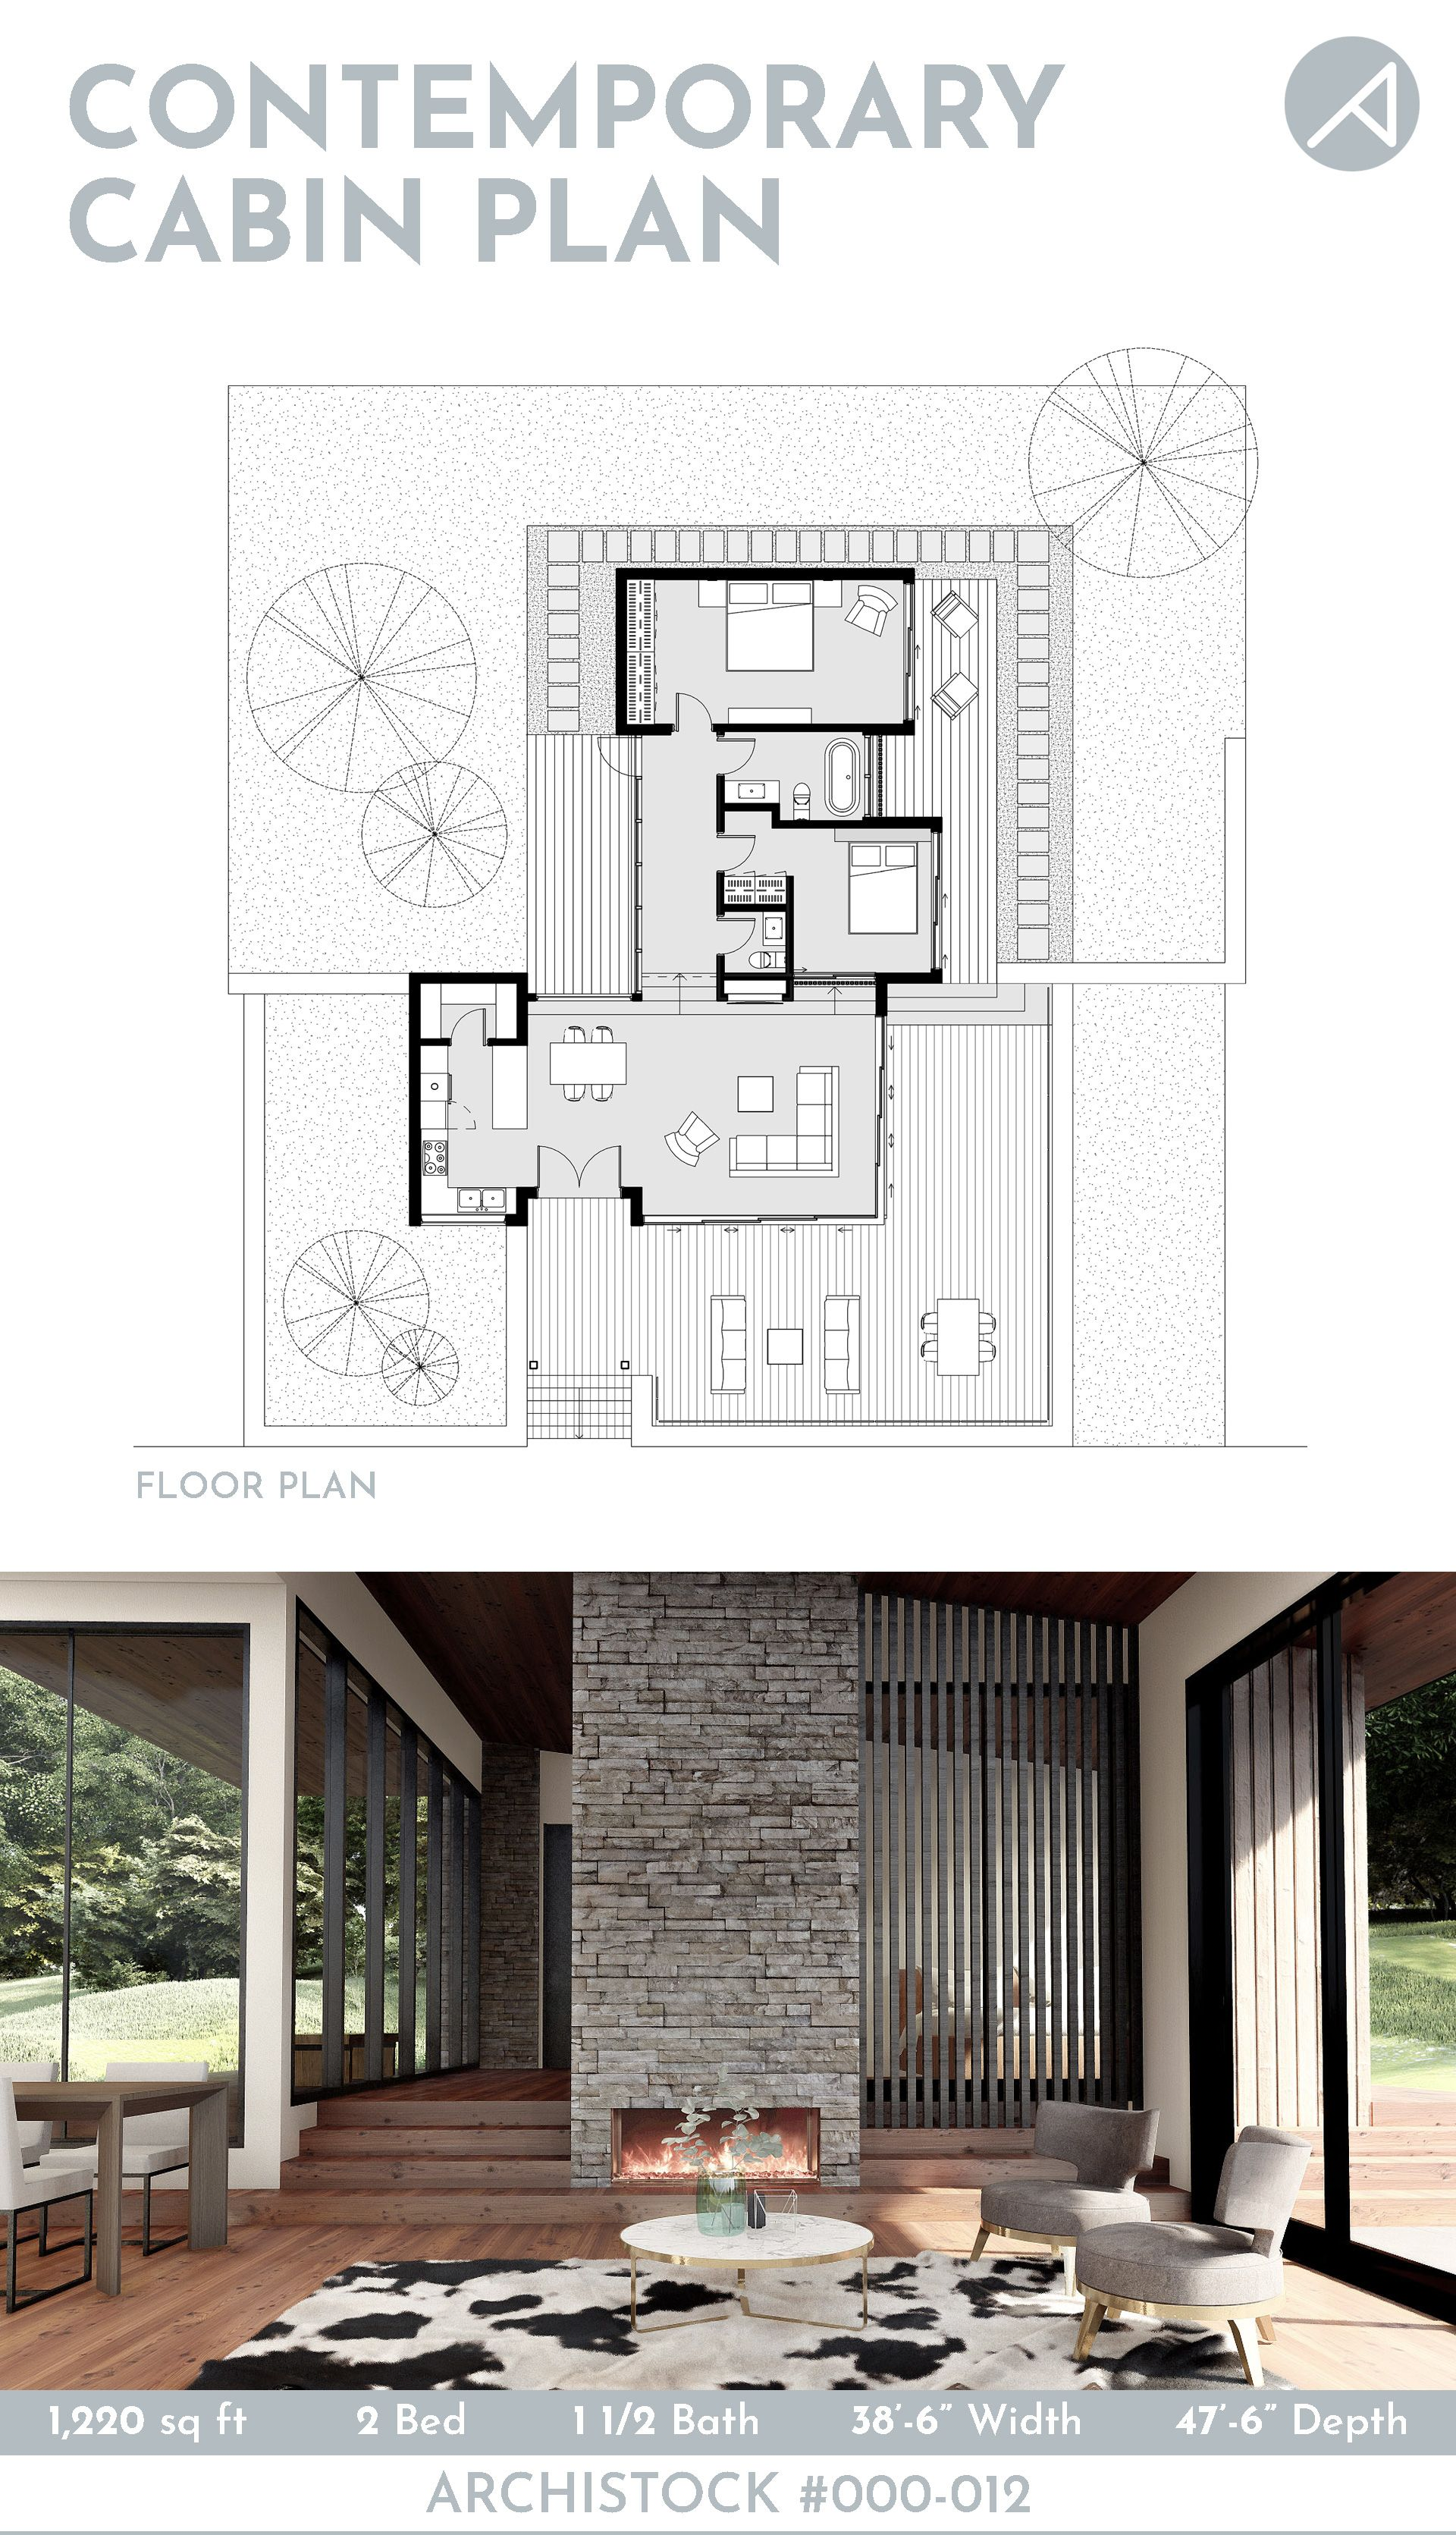 1,220 sq ft Contemporary Cabin House Plan, 1-story, 2 bedrooms, 1.5 baths, open concept living dining area. Perfect for a vacation home or a guest house project. For more info about the design, to see the floor plan, elevations, and other renderings, please visit our website. #smallhouseplans #cabin #cabinplans